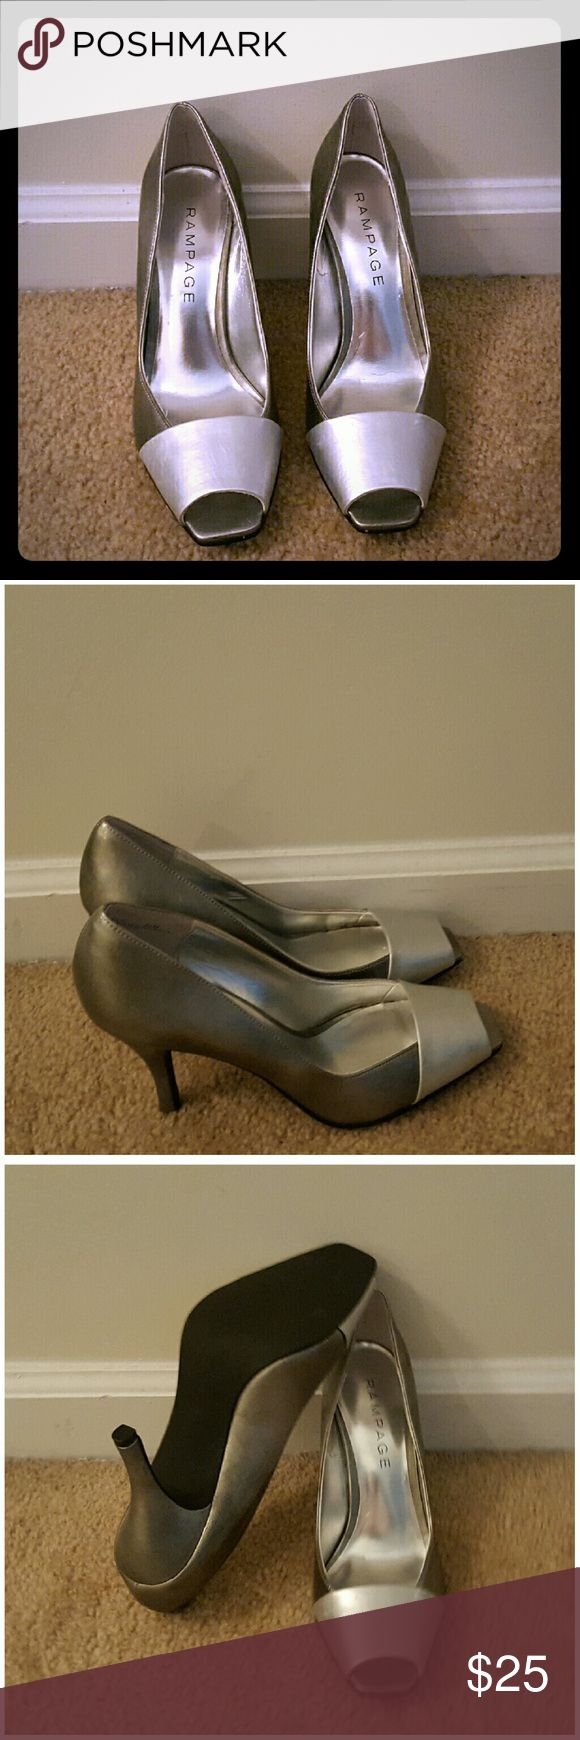 Silver Metallic Pumps Sexy Silver Metallic Pumps in good condition worn a couple times!!! Rampage Shoes Heels